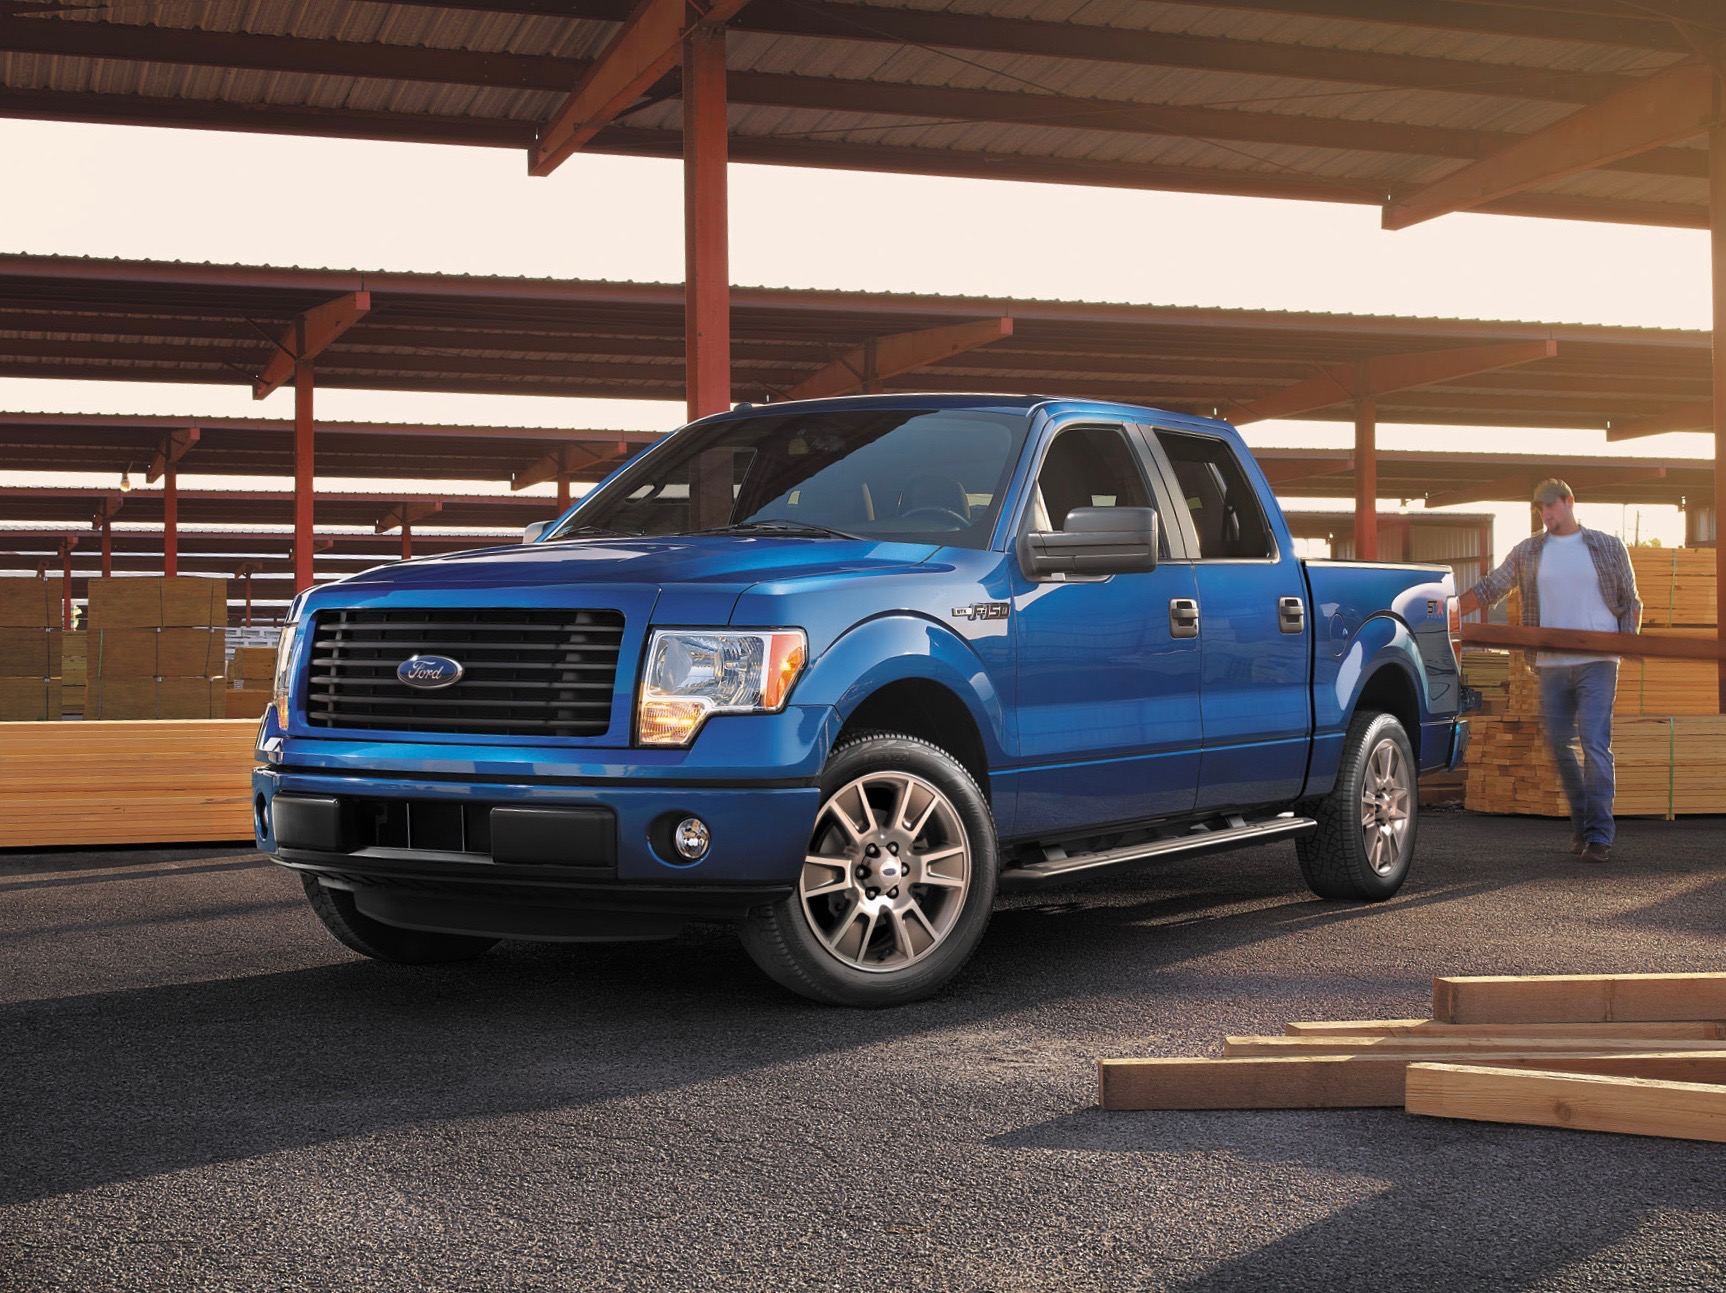 Ford Recalls F-150 and 3 Other Models for Seats